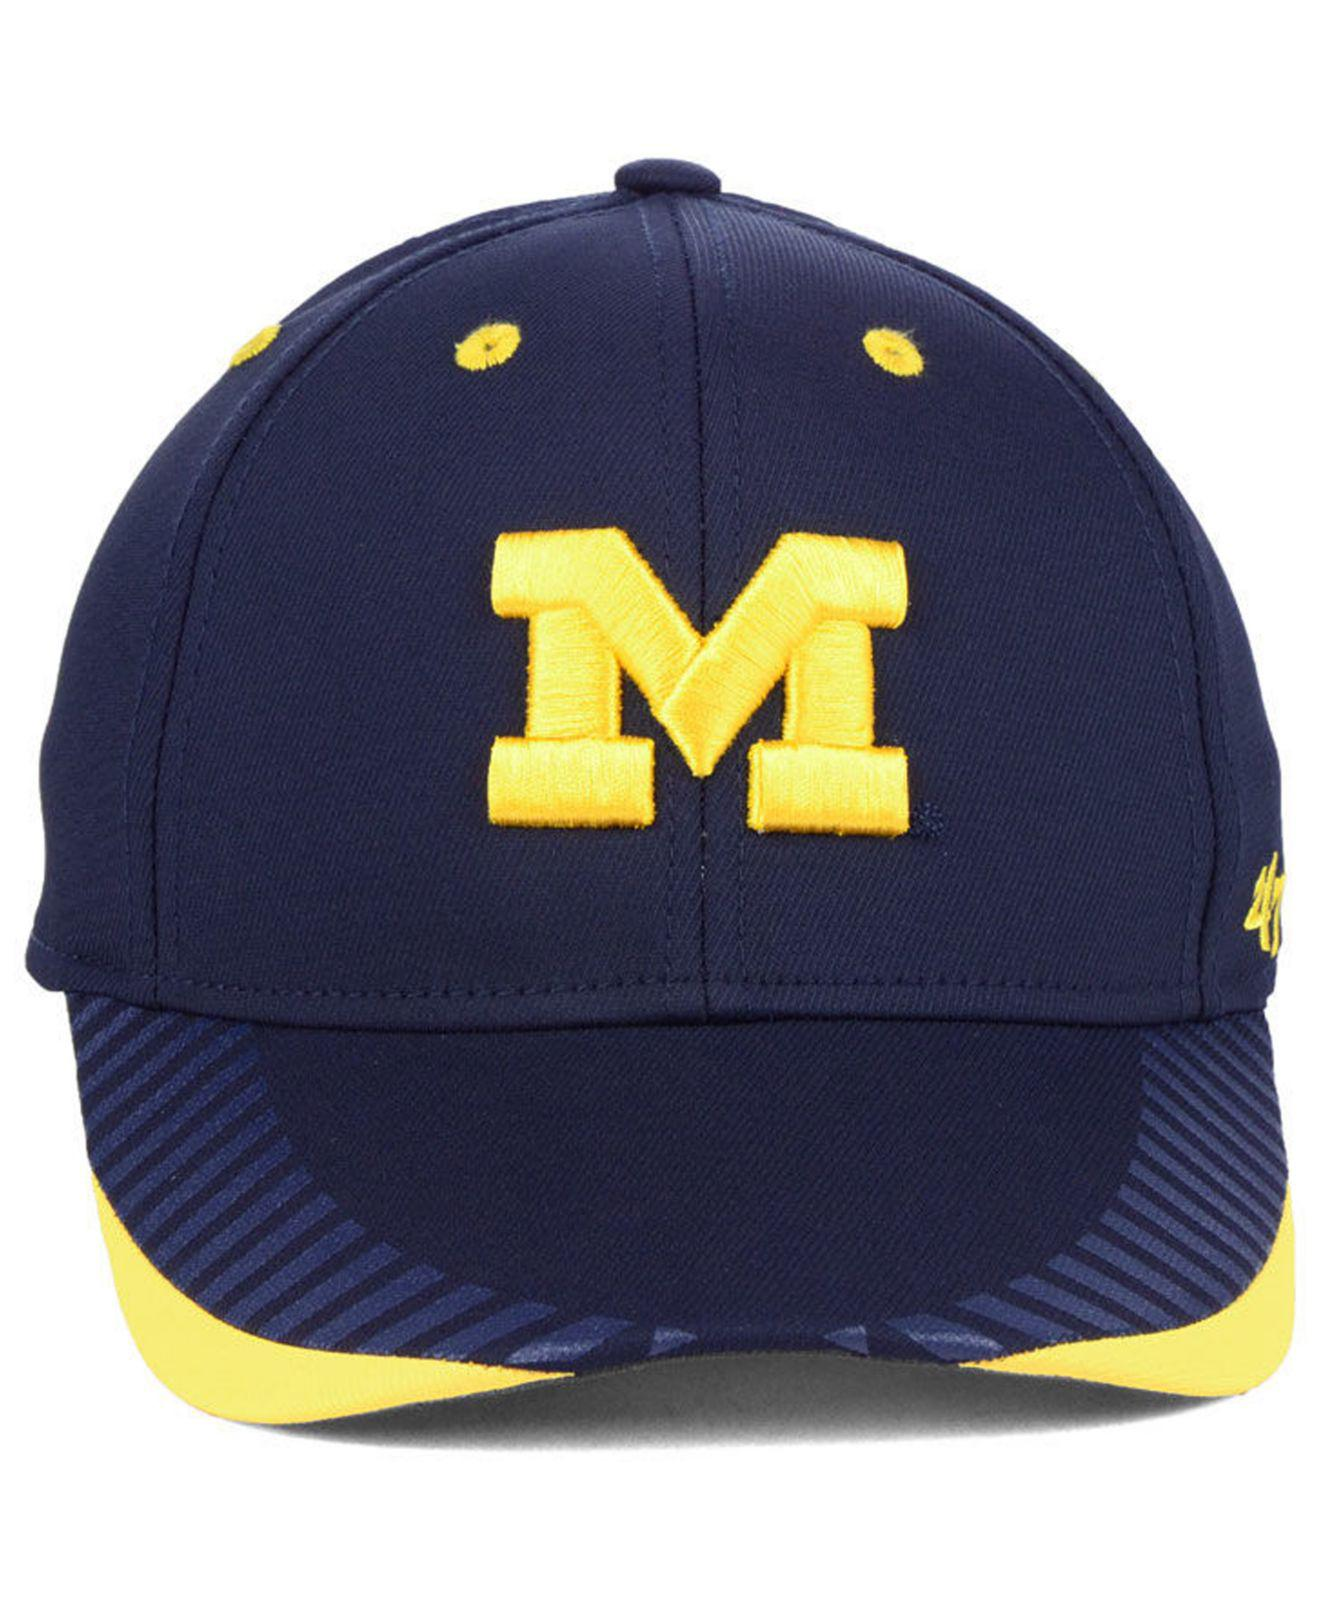 big sale f6d0a e7227 Lyst - 47 Brand Michigan Wolverines Temper Contender Flex Stretch Fitted Cap  in Blue for Men